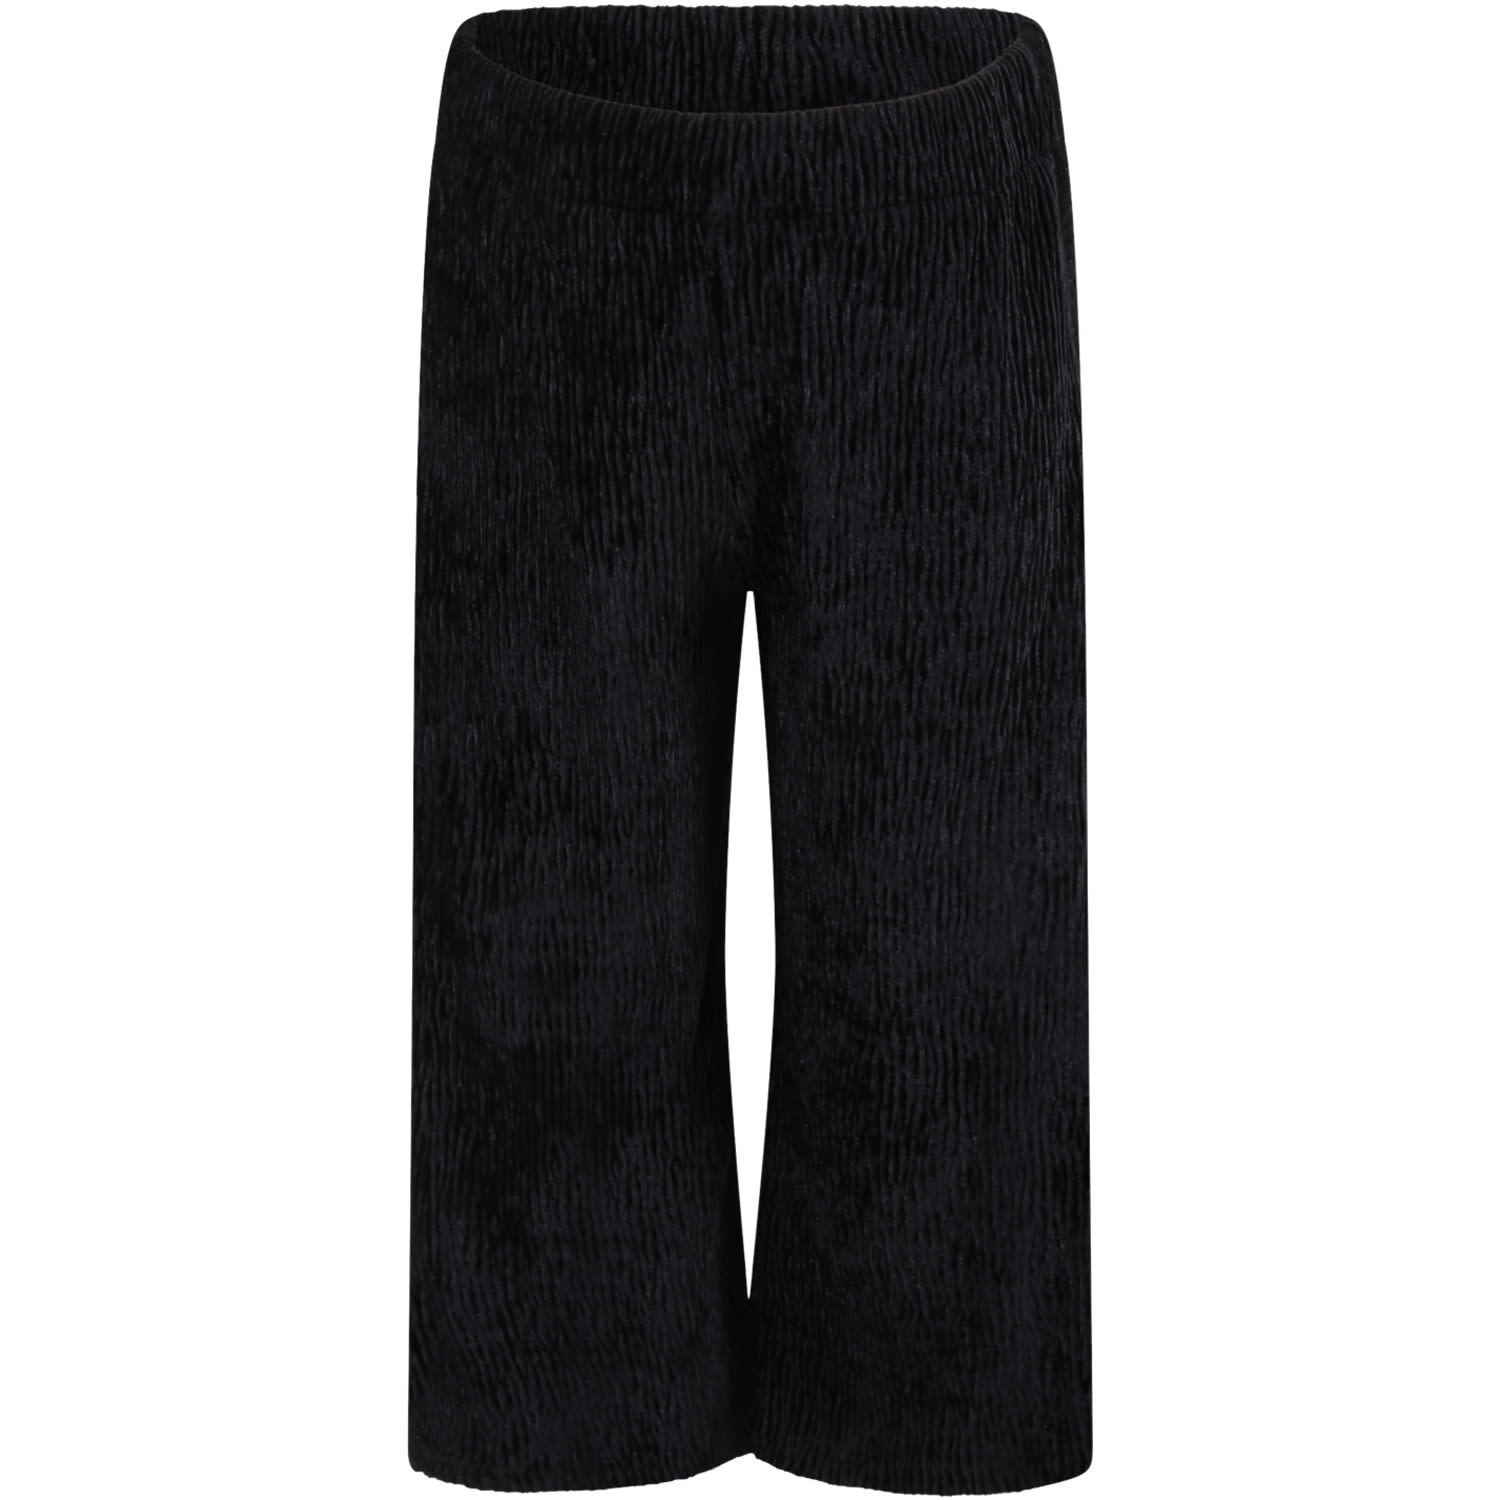 Caffe dOrzo Black dana Trousers For Girl With Lurex Details